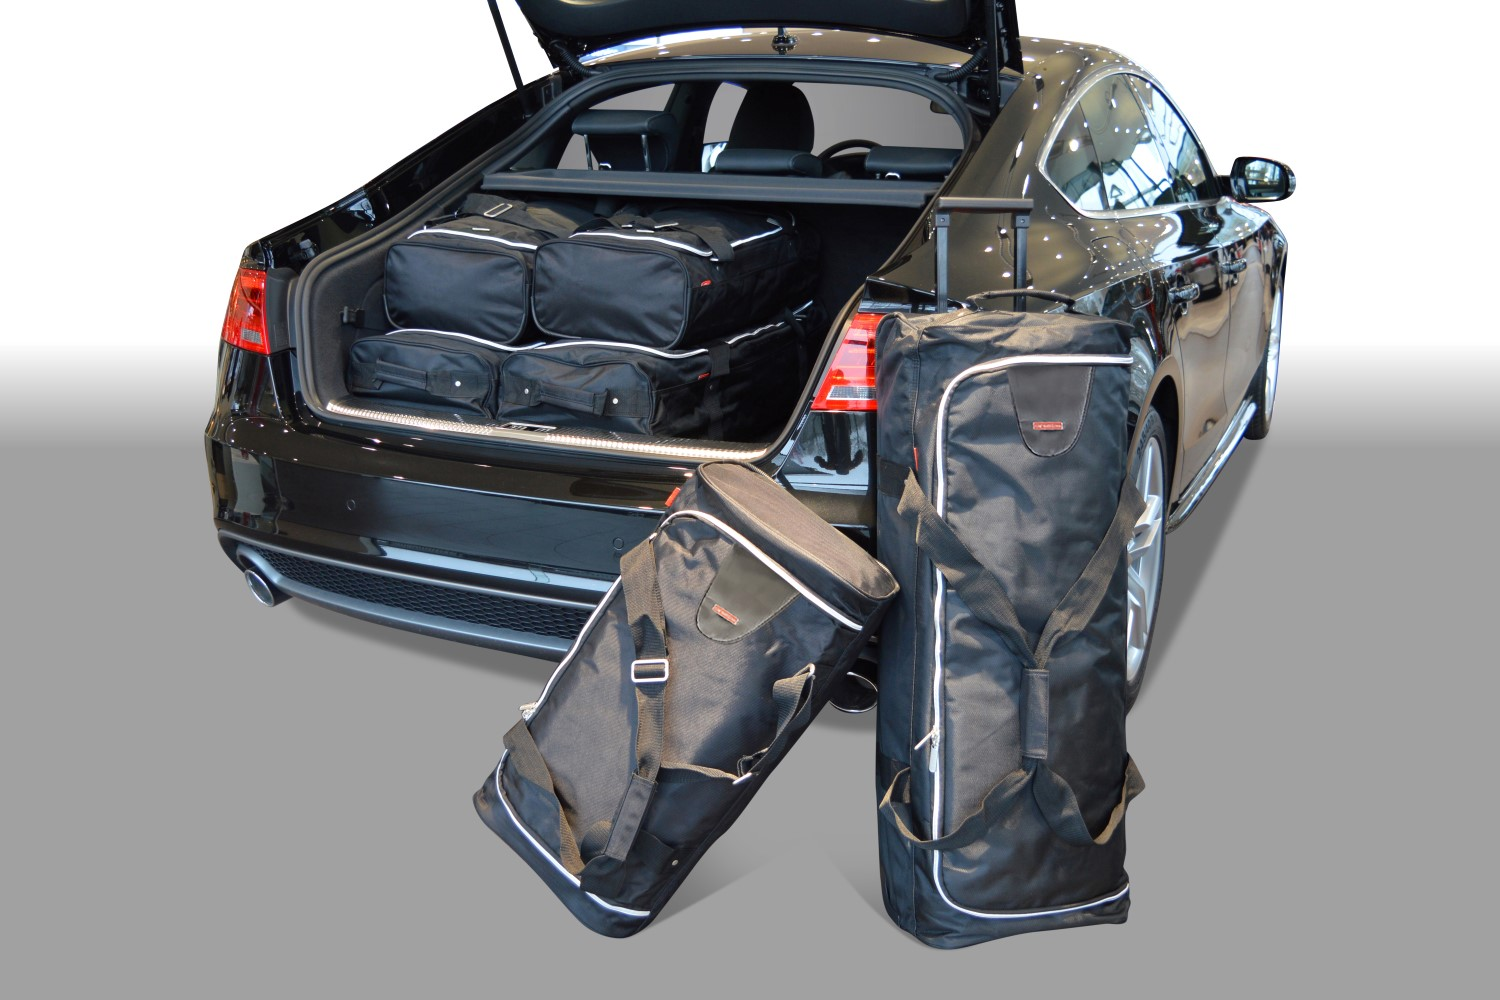 Audi A5 Sportback (8TA) 2009-2016 5 door Car-Bags.com travel bag set (1)